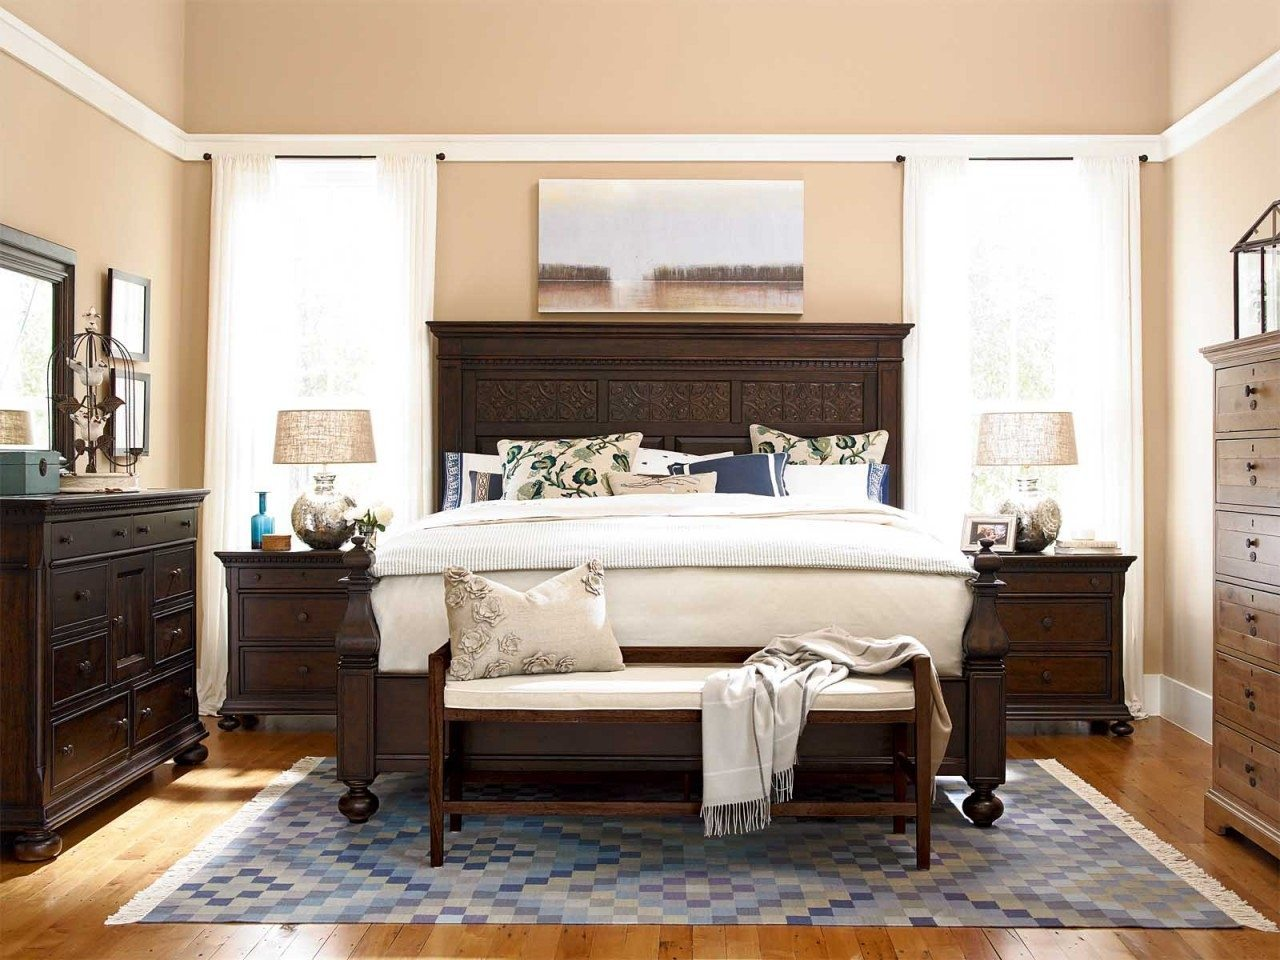 Image of: Bedroom Furniture Sold At Dillard'S